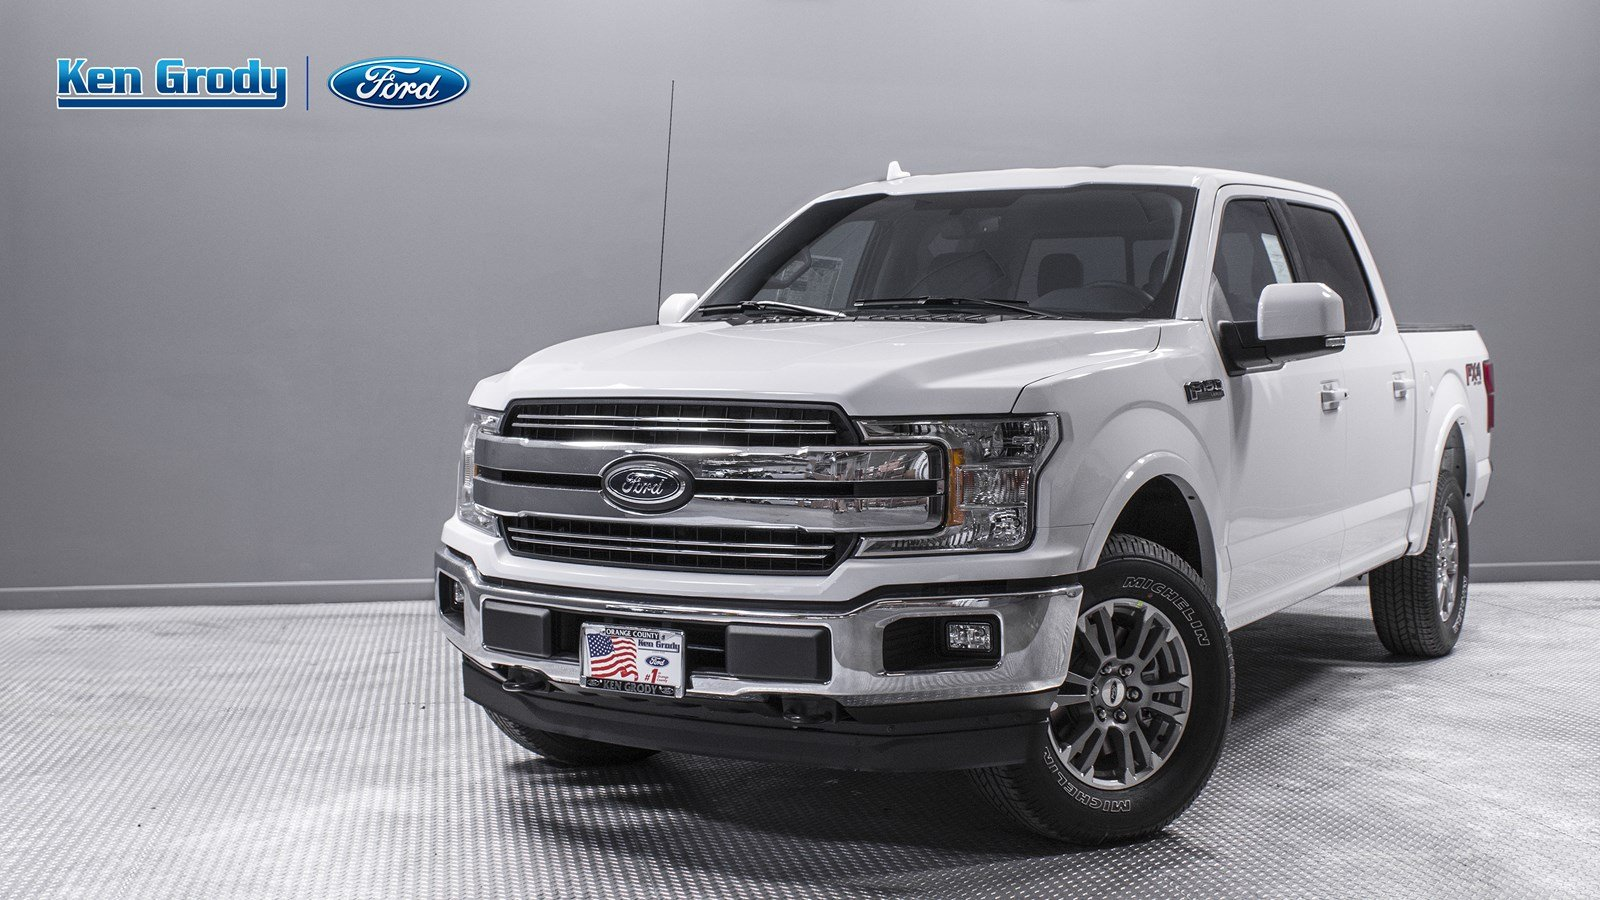 Ford F150 Garage Door Opener | 2018, 2019, 2020 Ford Cars